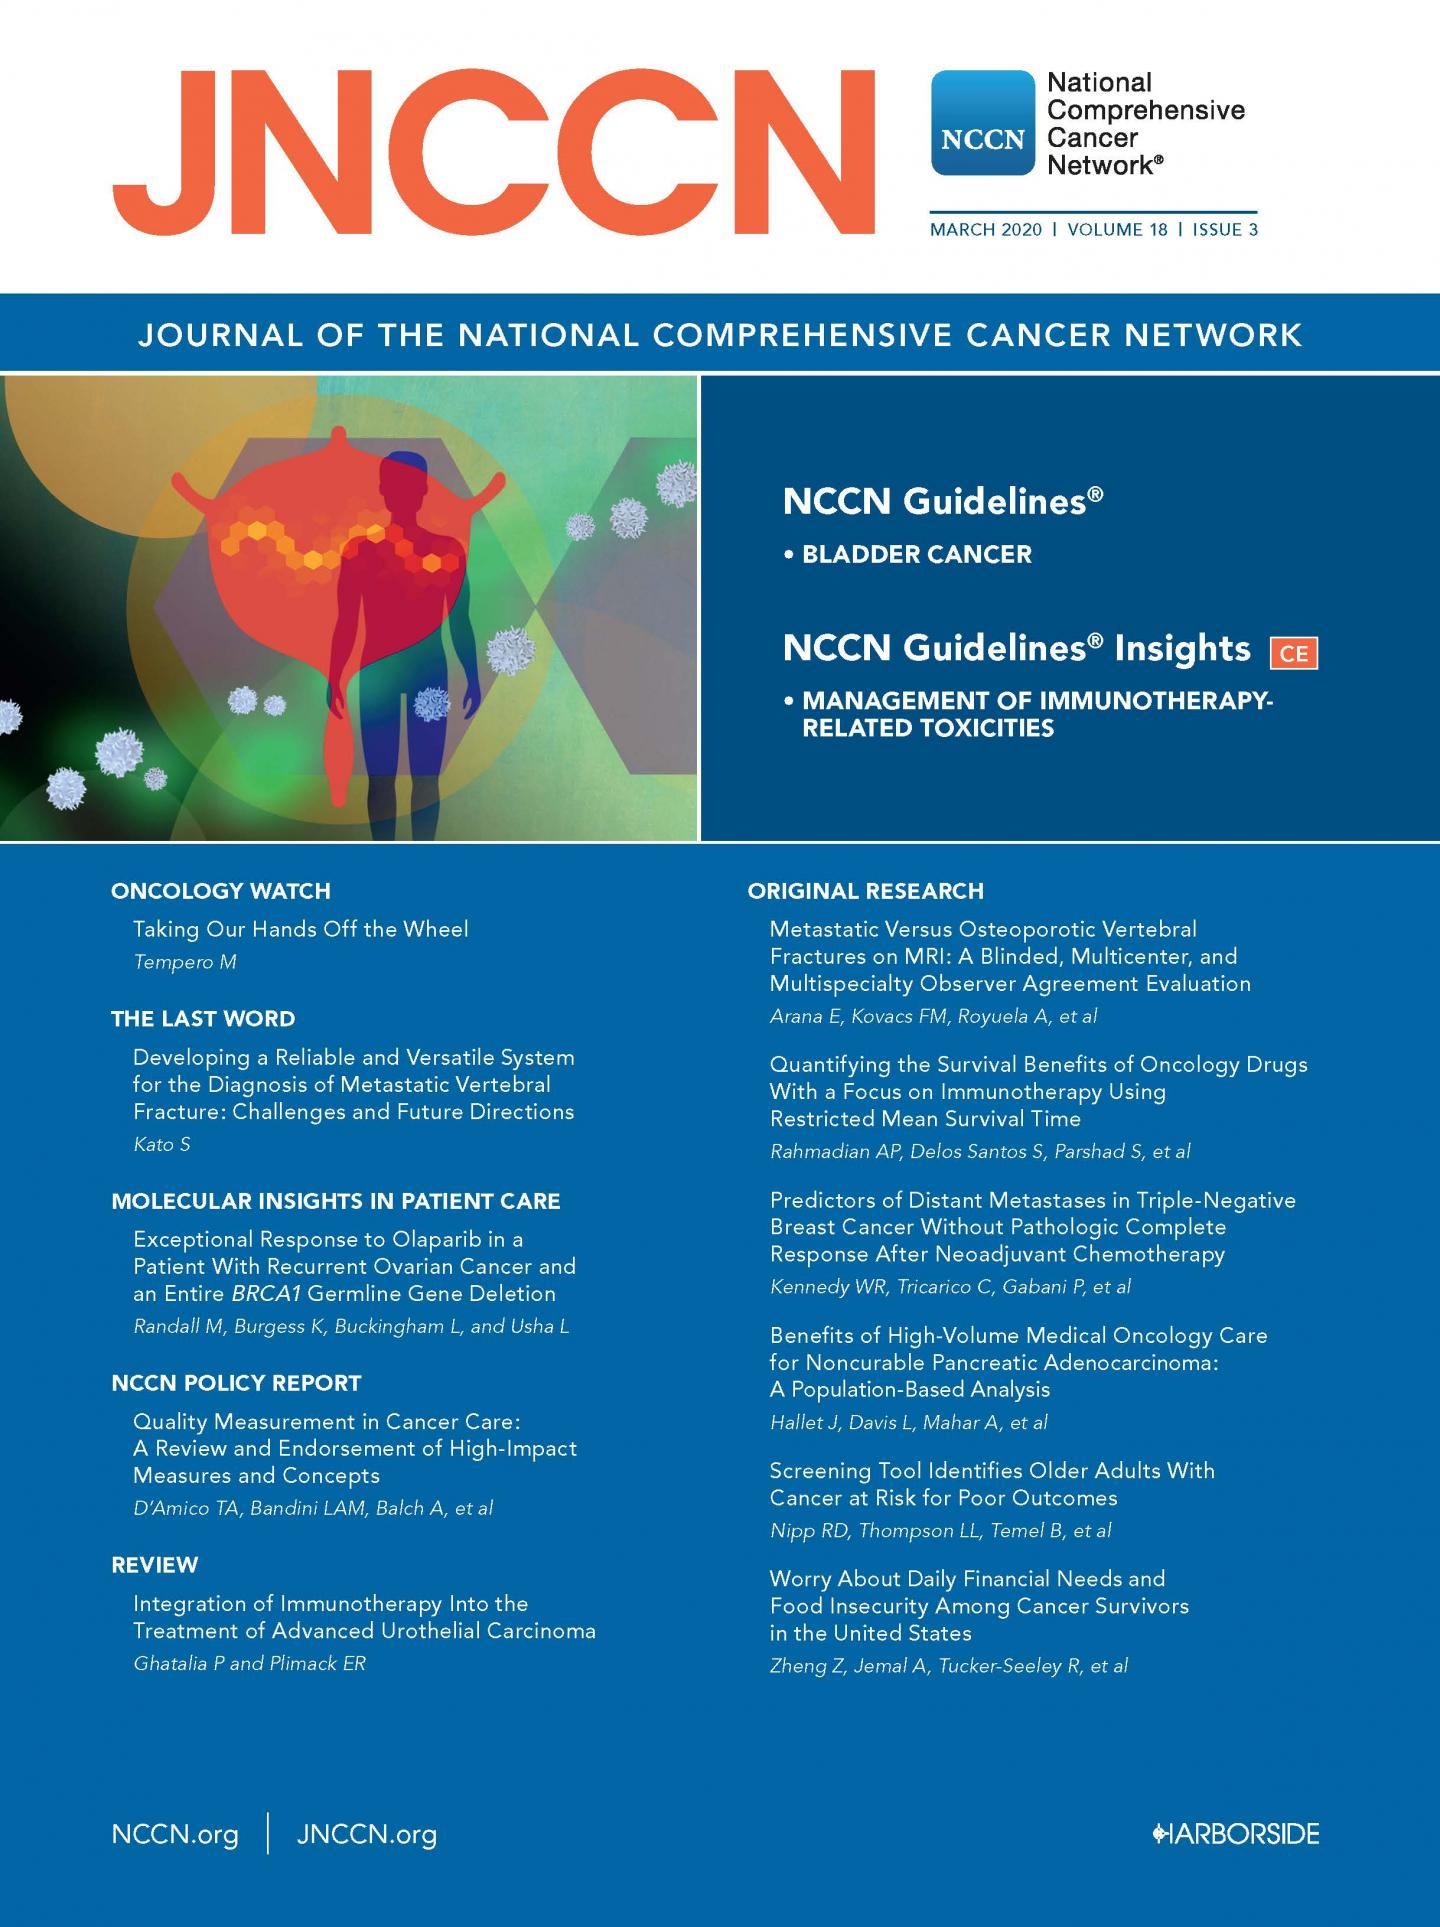 JNCCN March 2020 Cover